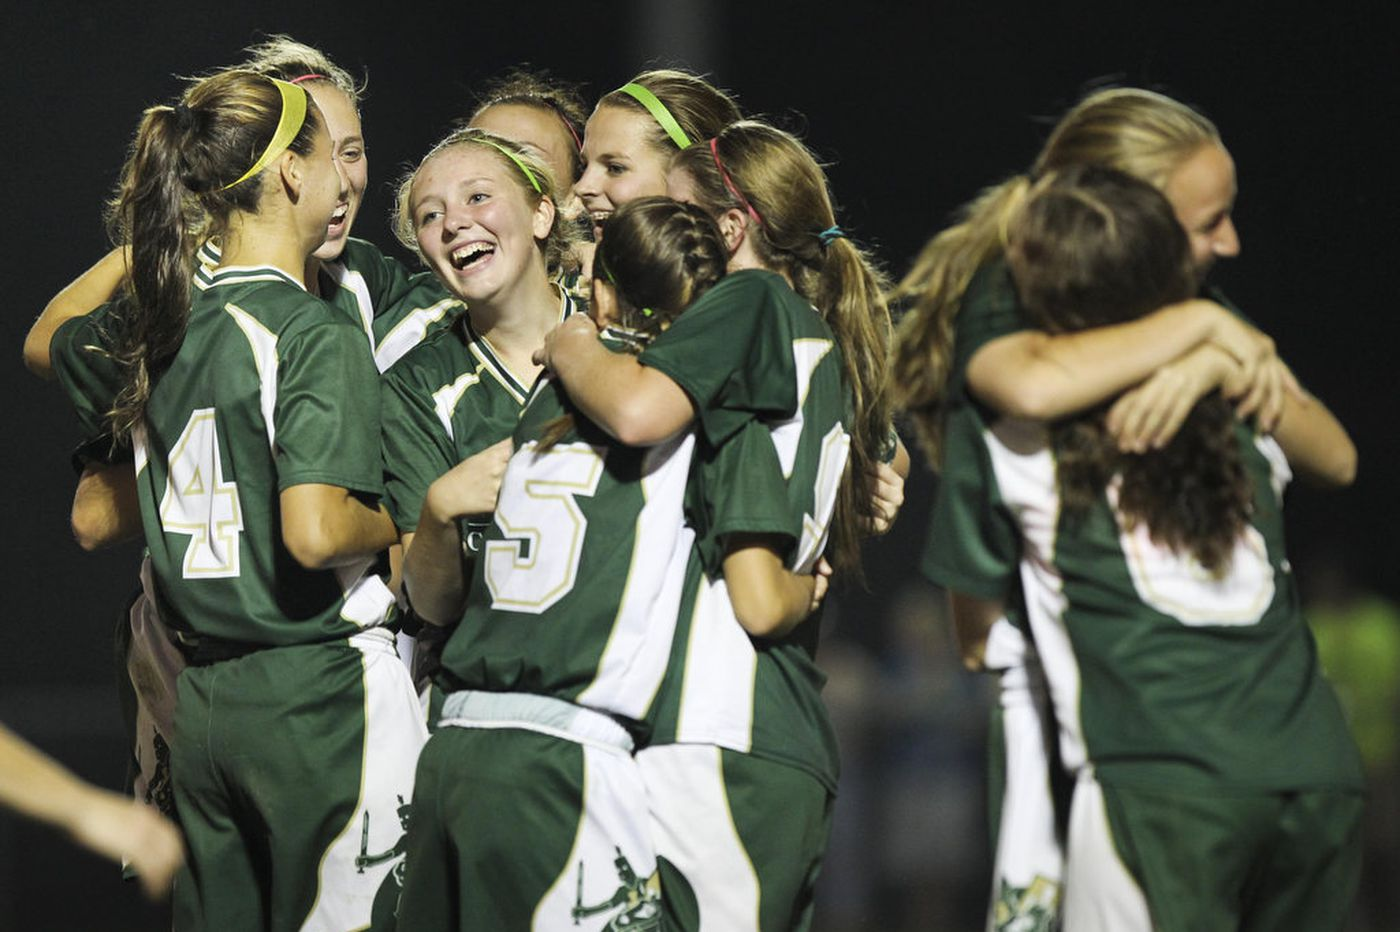 Thursday's Southeastern Pa. roundup: Lansdale Catholic girls advance in Catholic League soccer playoffs off double OT goal